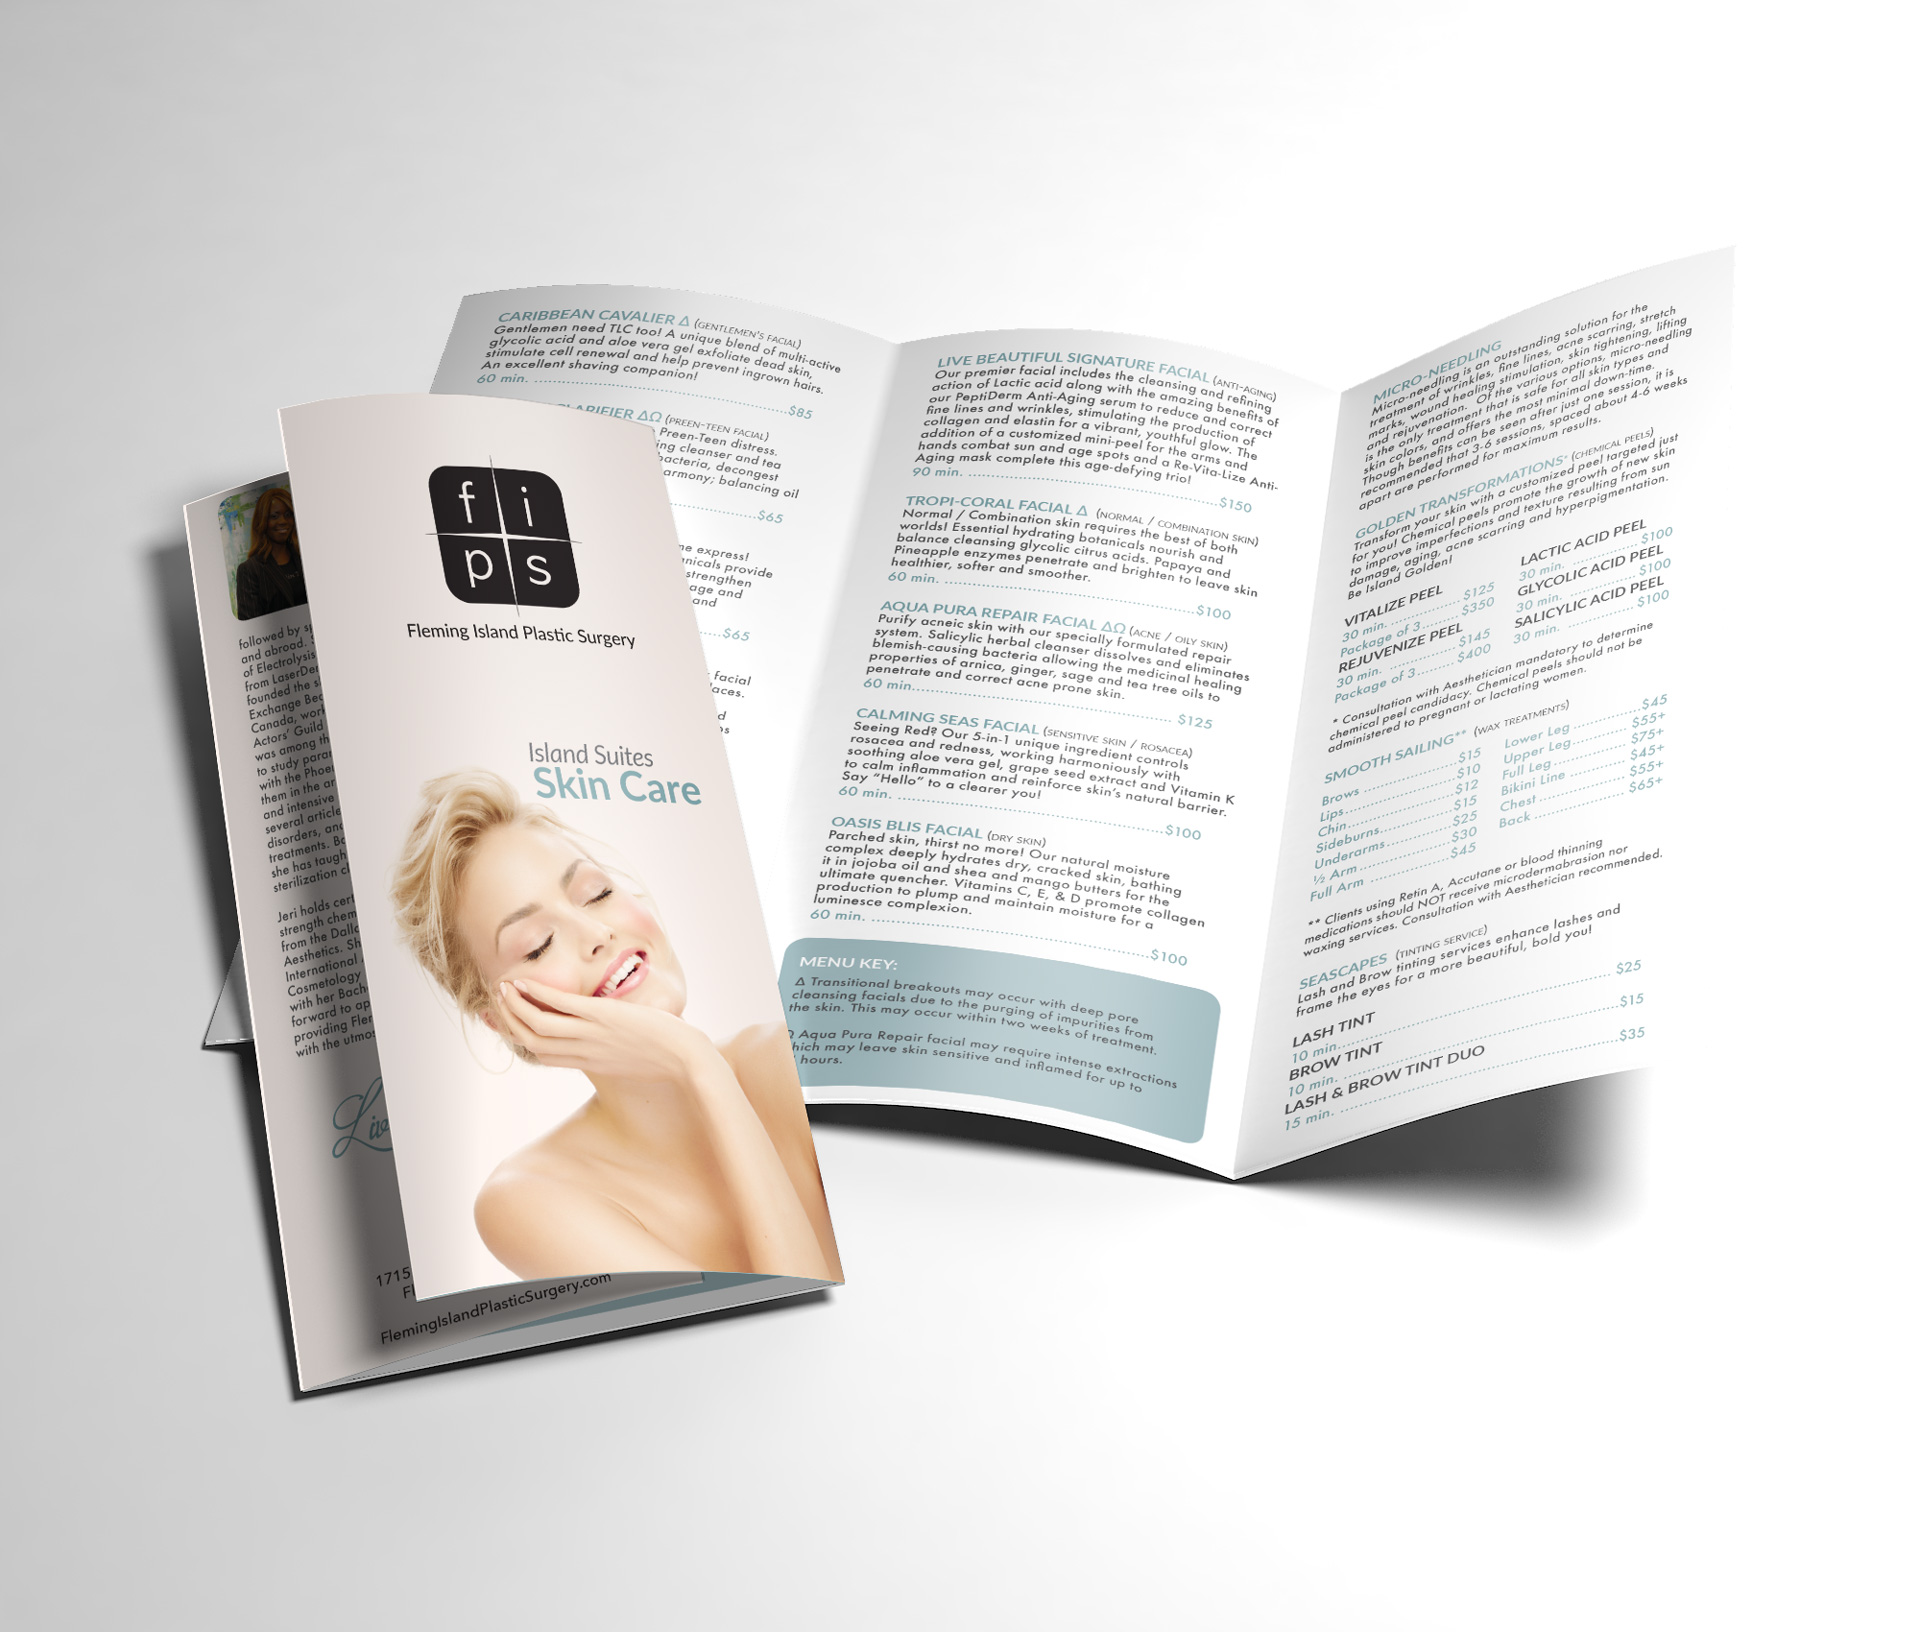 Fleming Island Plastic Surgery Skin Care Treatment Brochure